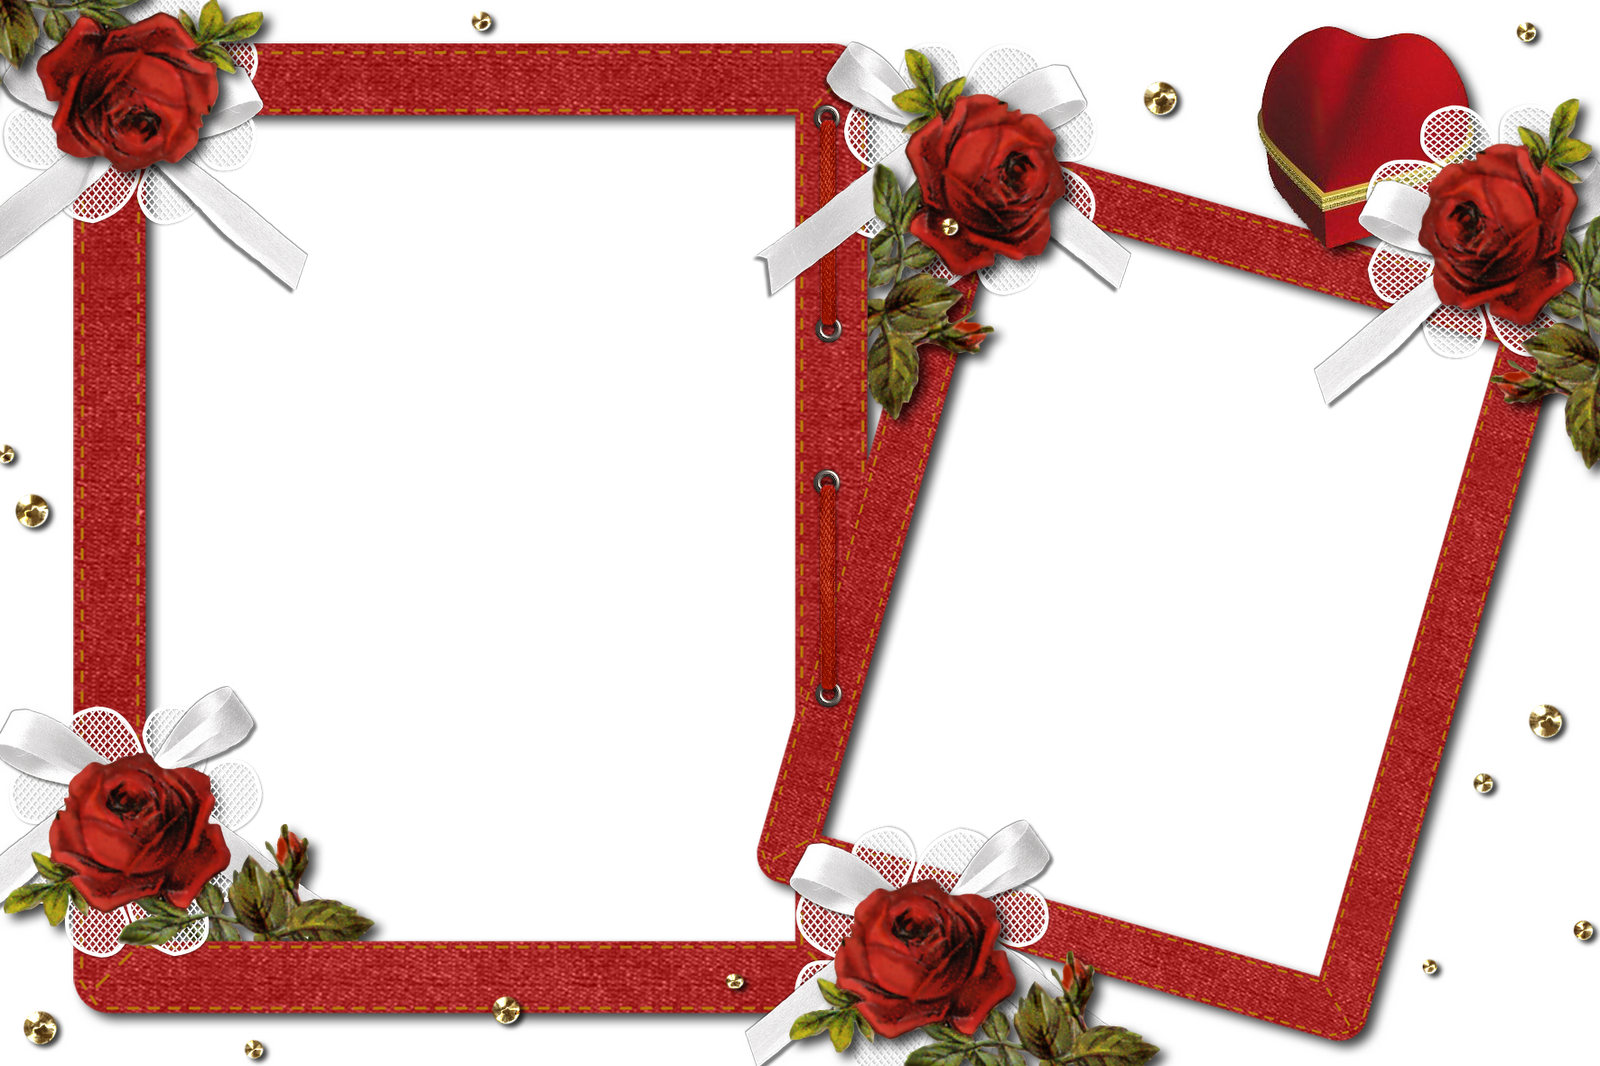 Double photo frame png. Romantic transparent with roses